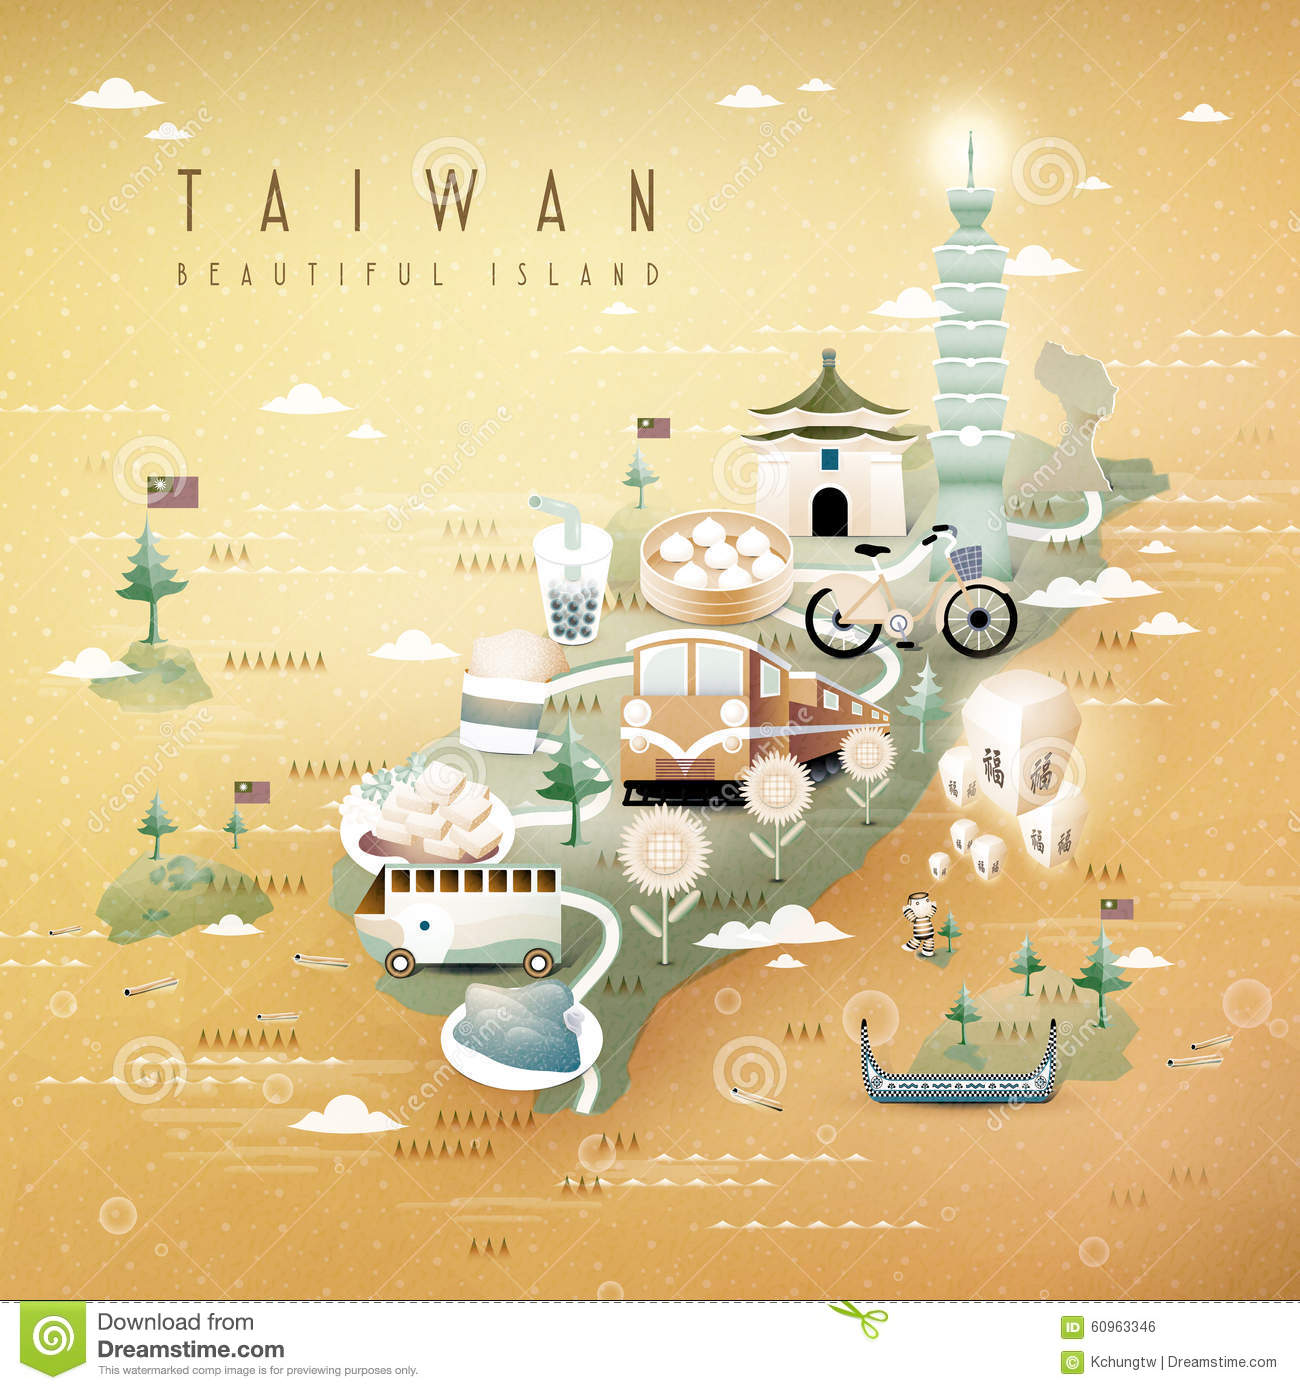 free online dating in taiwan Taiwan dating and matchmaking site for taiwan singles and personals find your love in taiwan now.